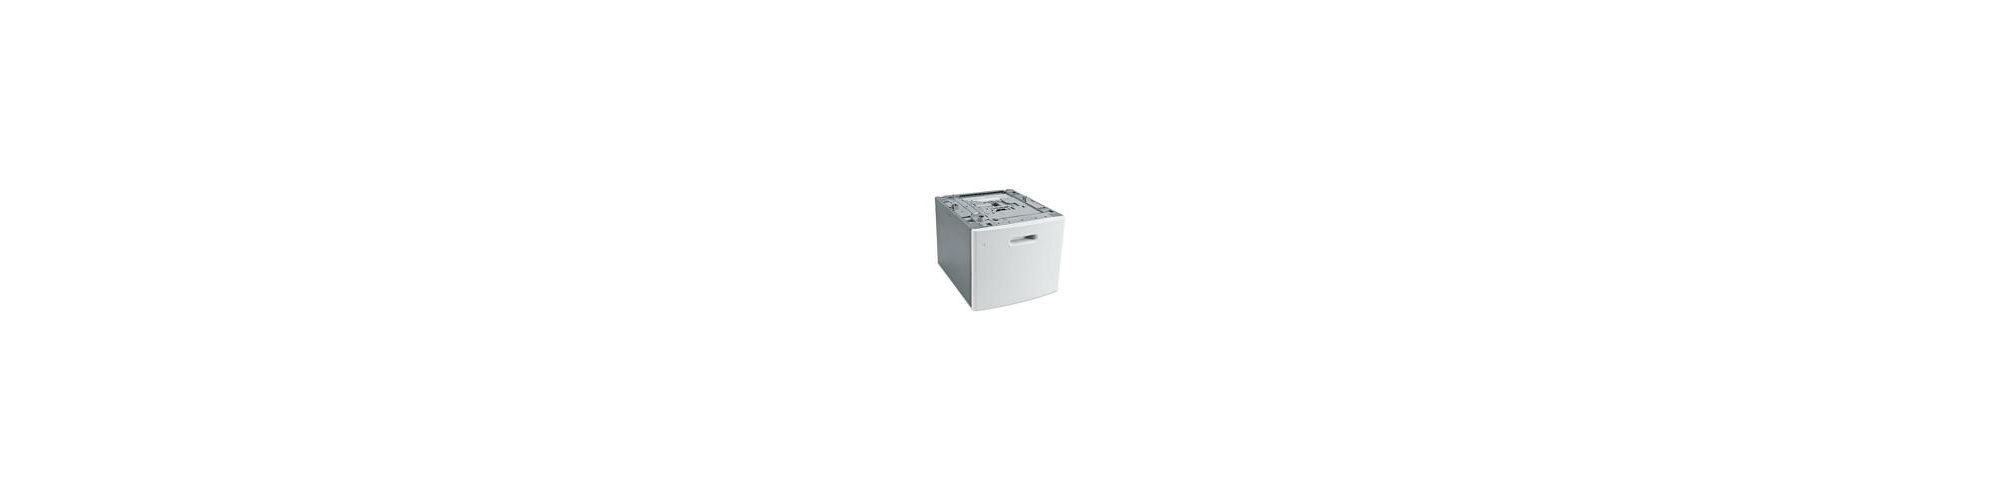 Lexmark 30G0804 High Capacity Feeder (2000 sheets)